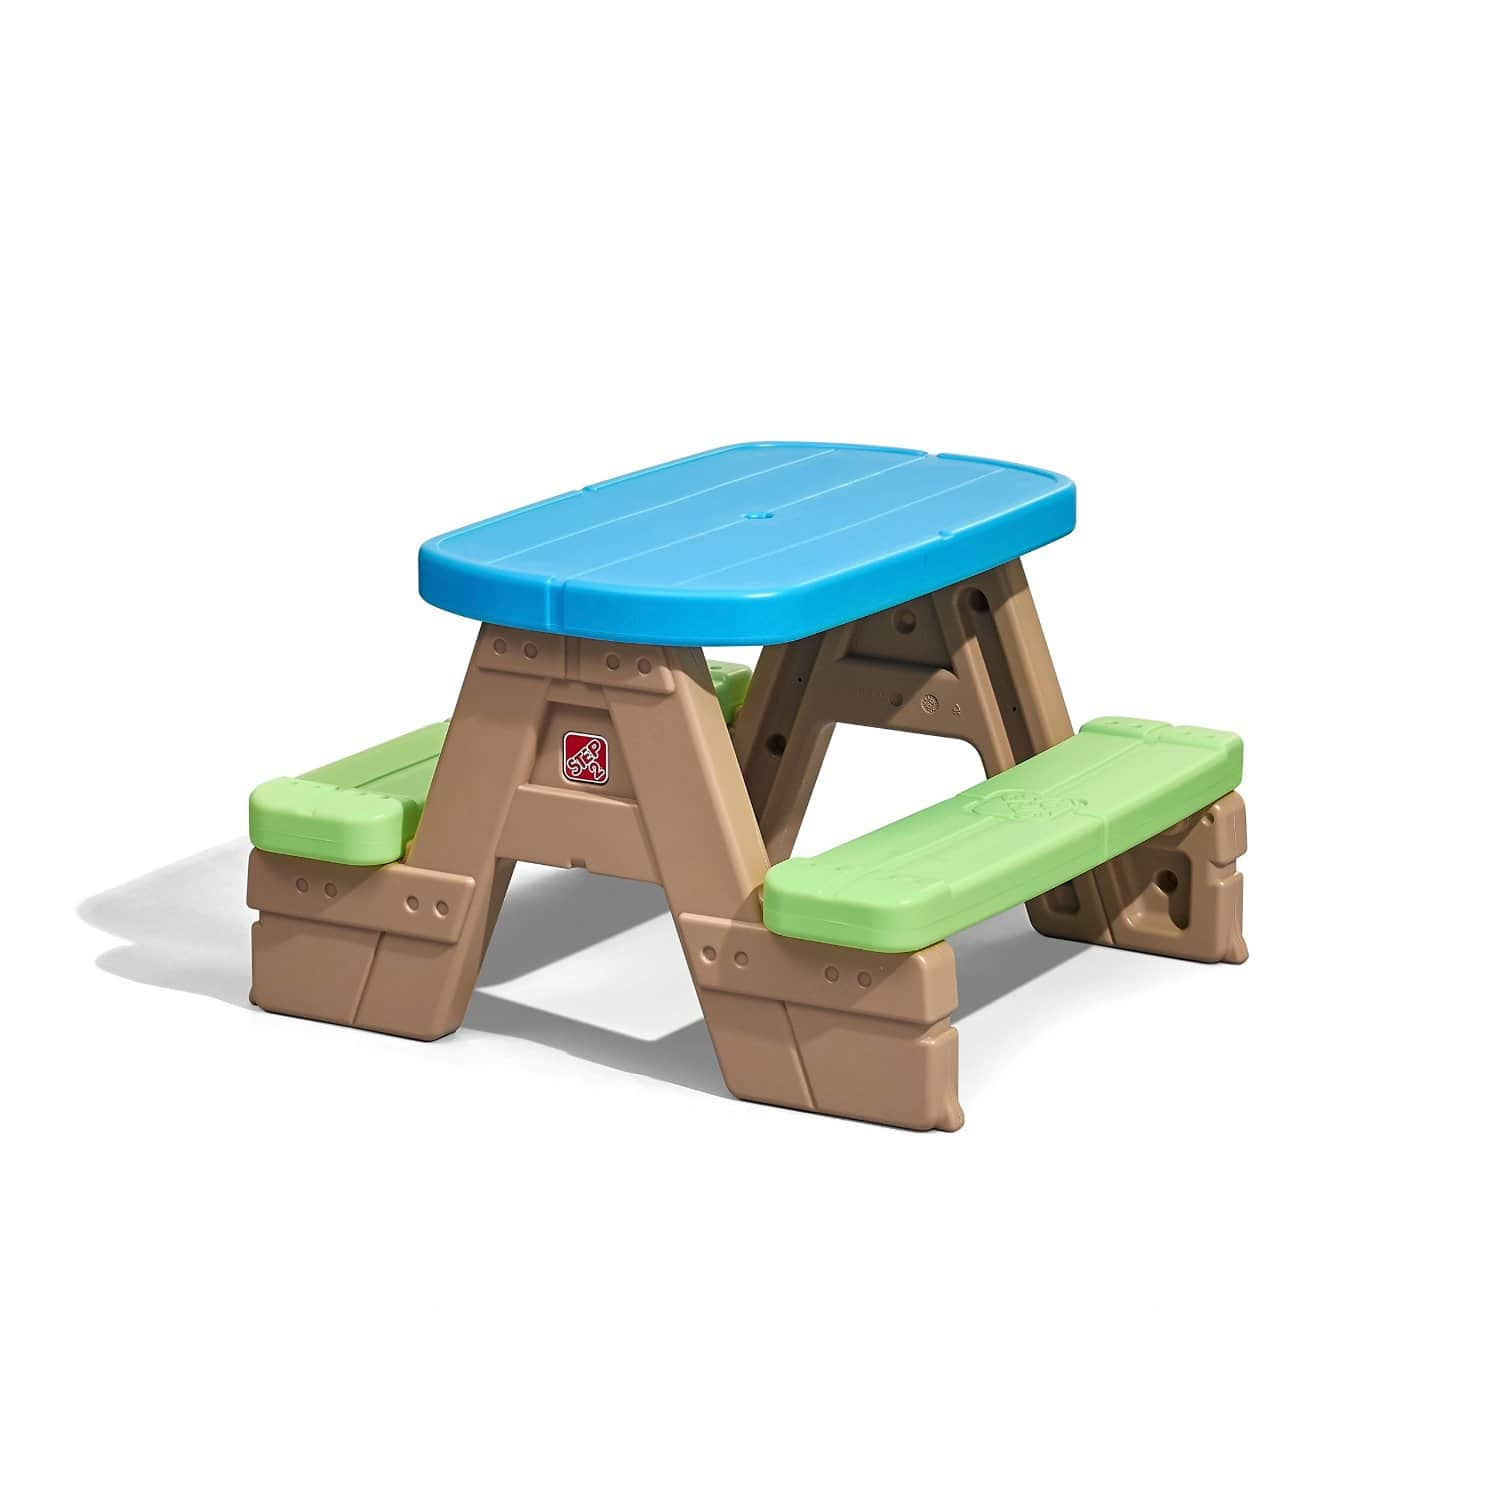 Step2 Sit & Play Jr. Picnic Table for $22.84 at Amazon, Prime eligible